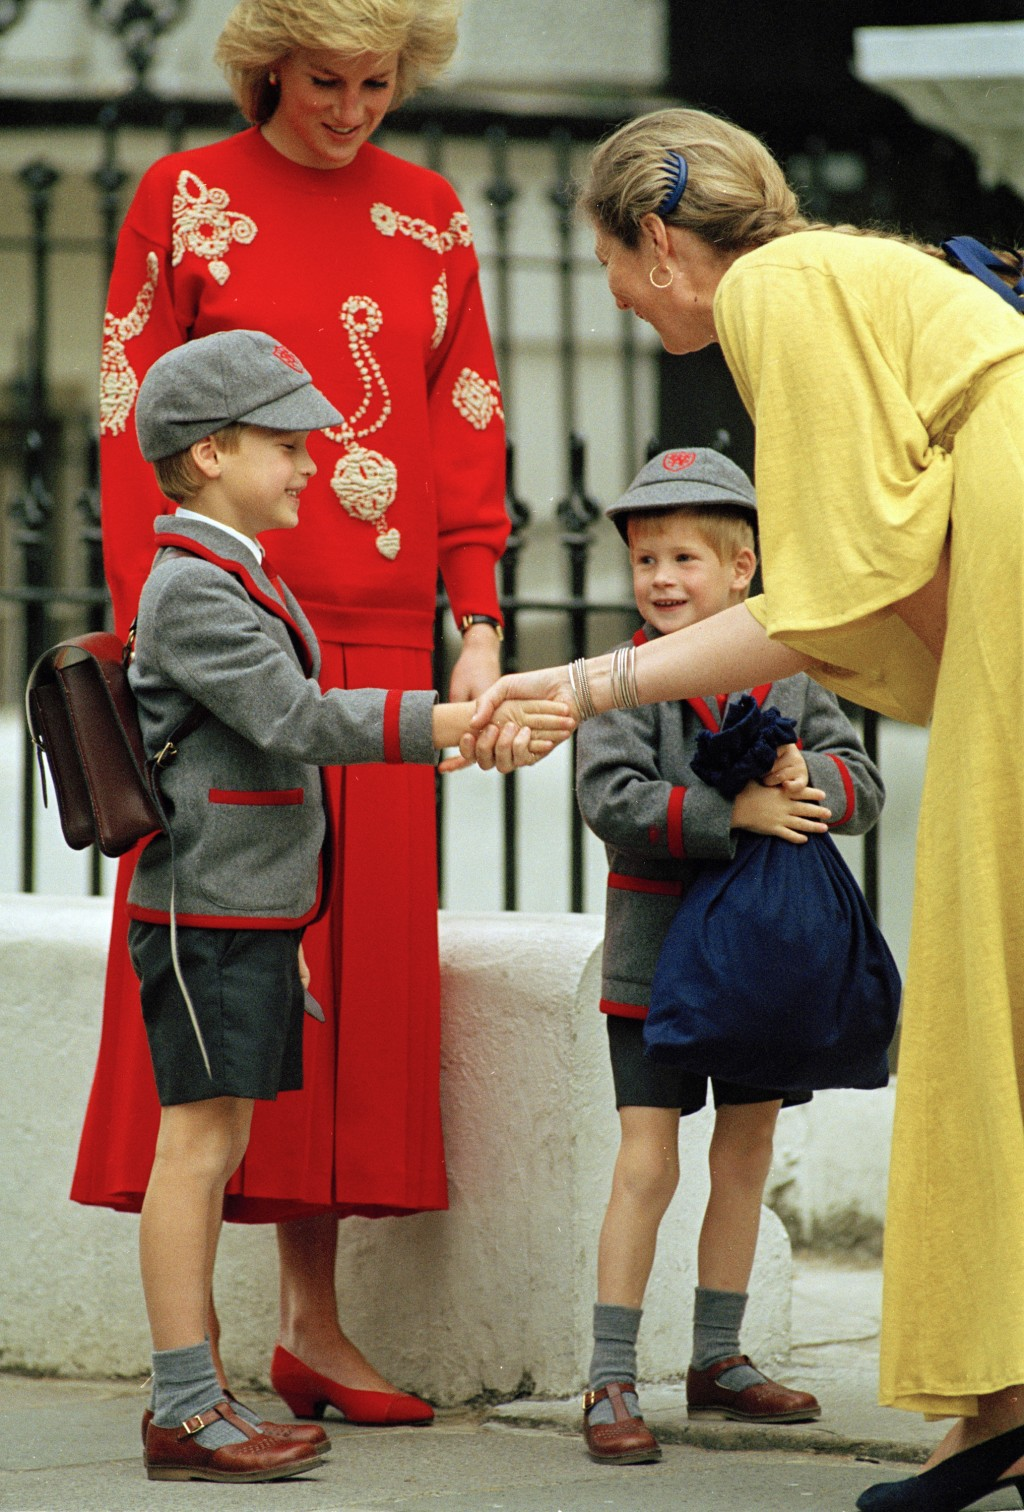 FILE - In this Sept. 11, 1989 file photo, Britain's Prince William gets a handshake from Frederika Blair-Turner, the headmistress of Wetherby School i...